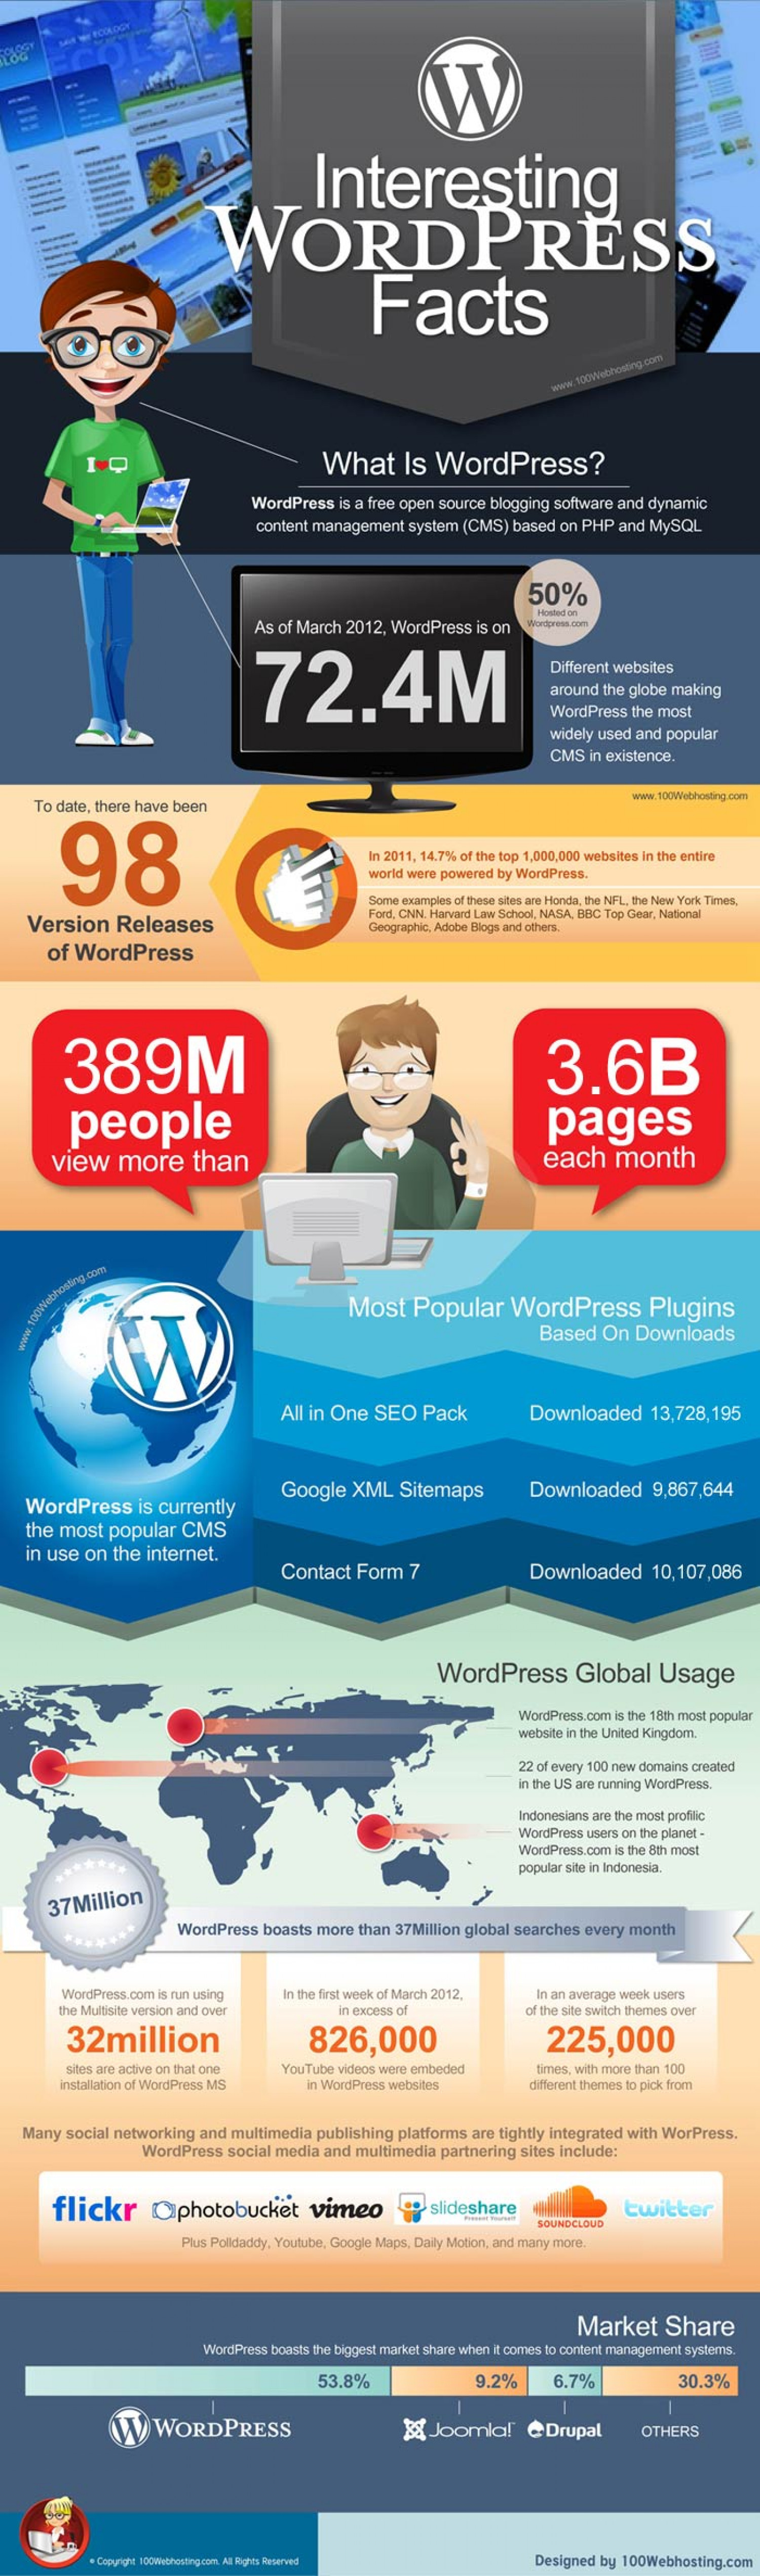 Interesting WordPress Facts Infographic